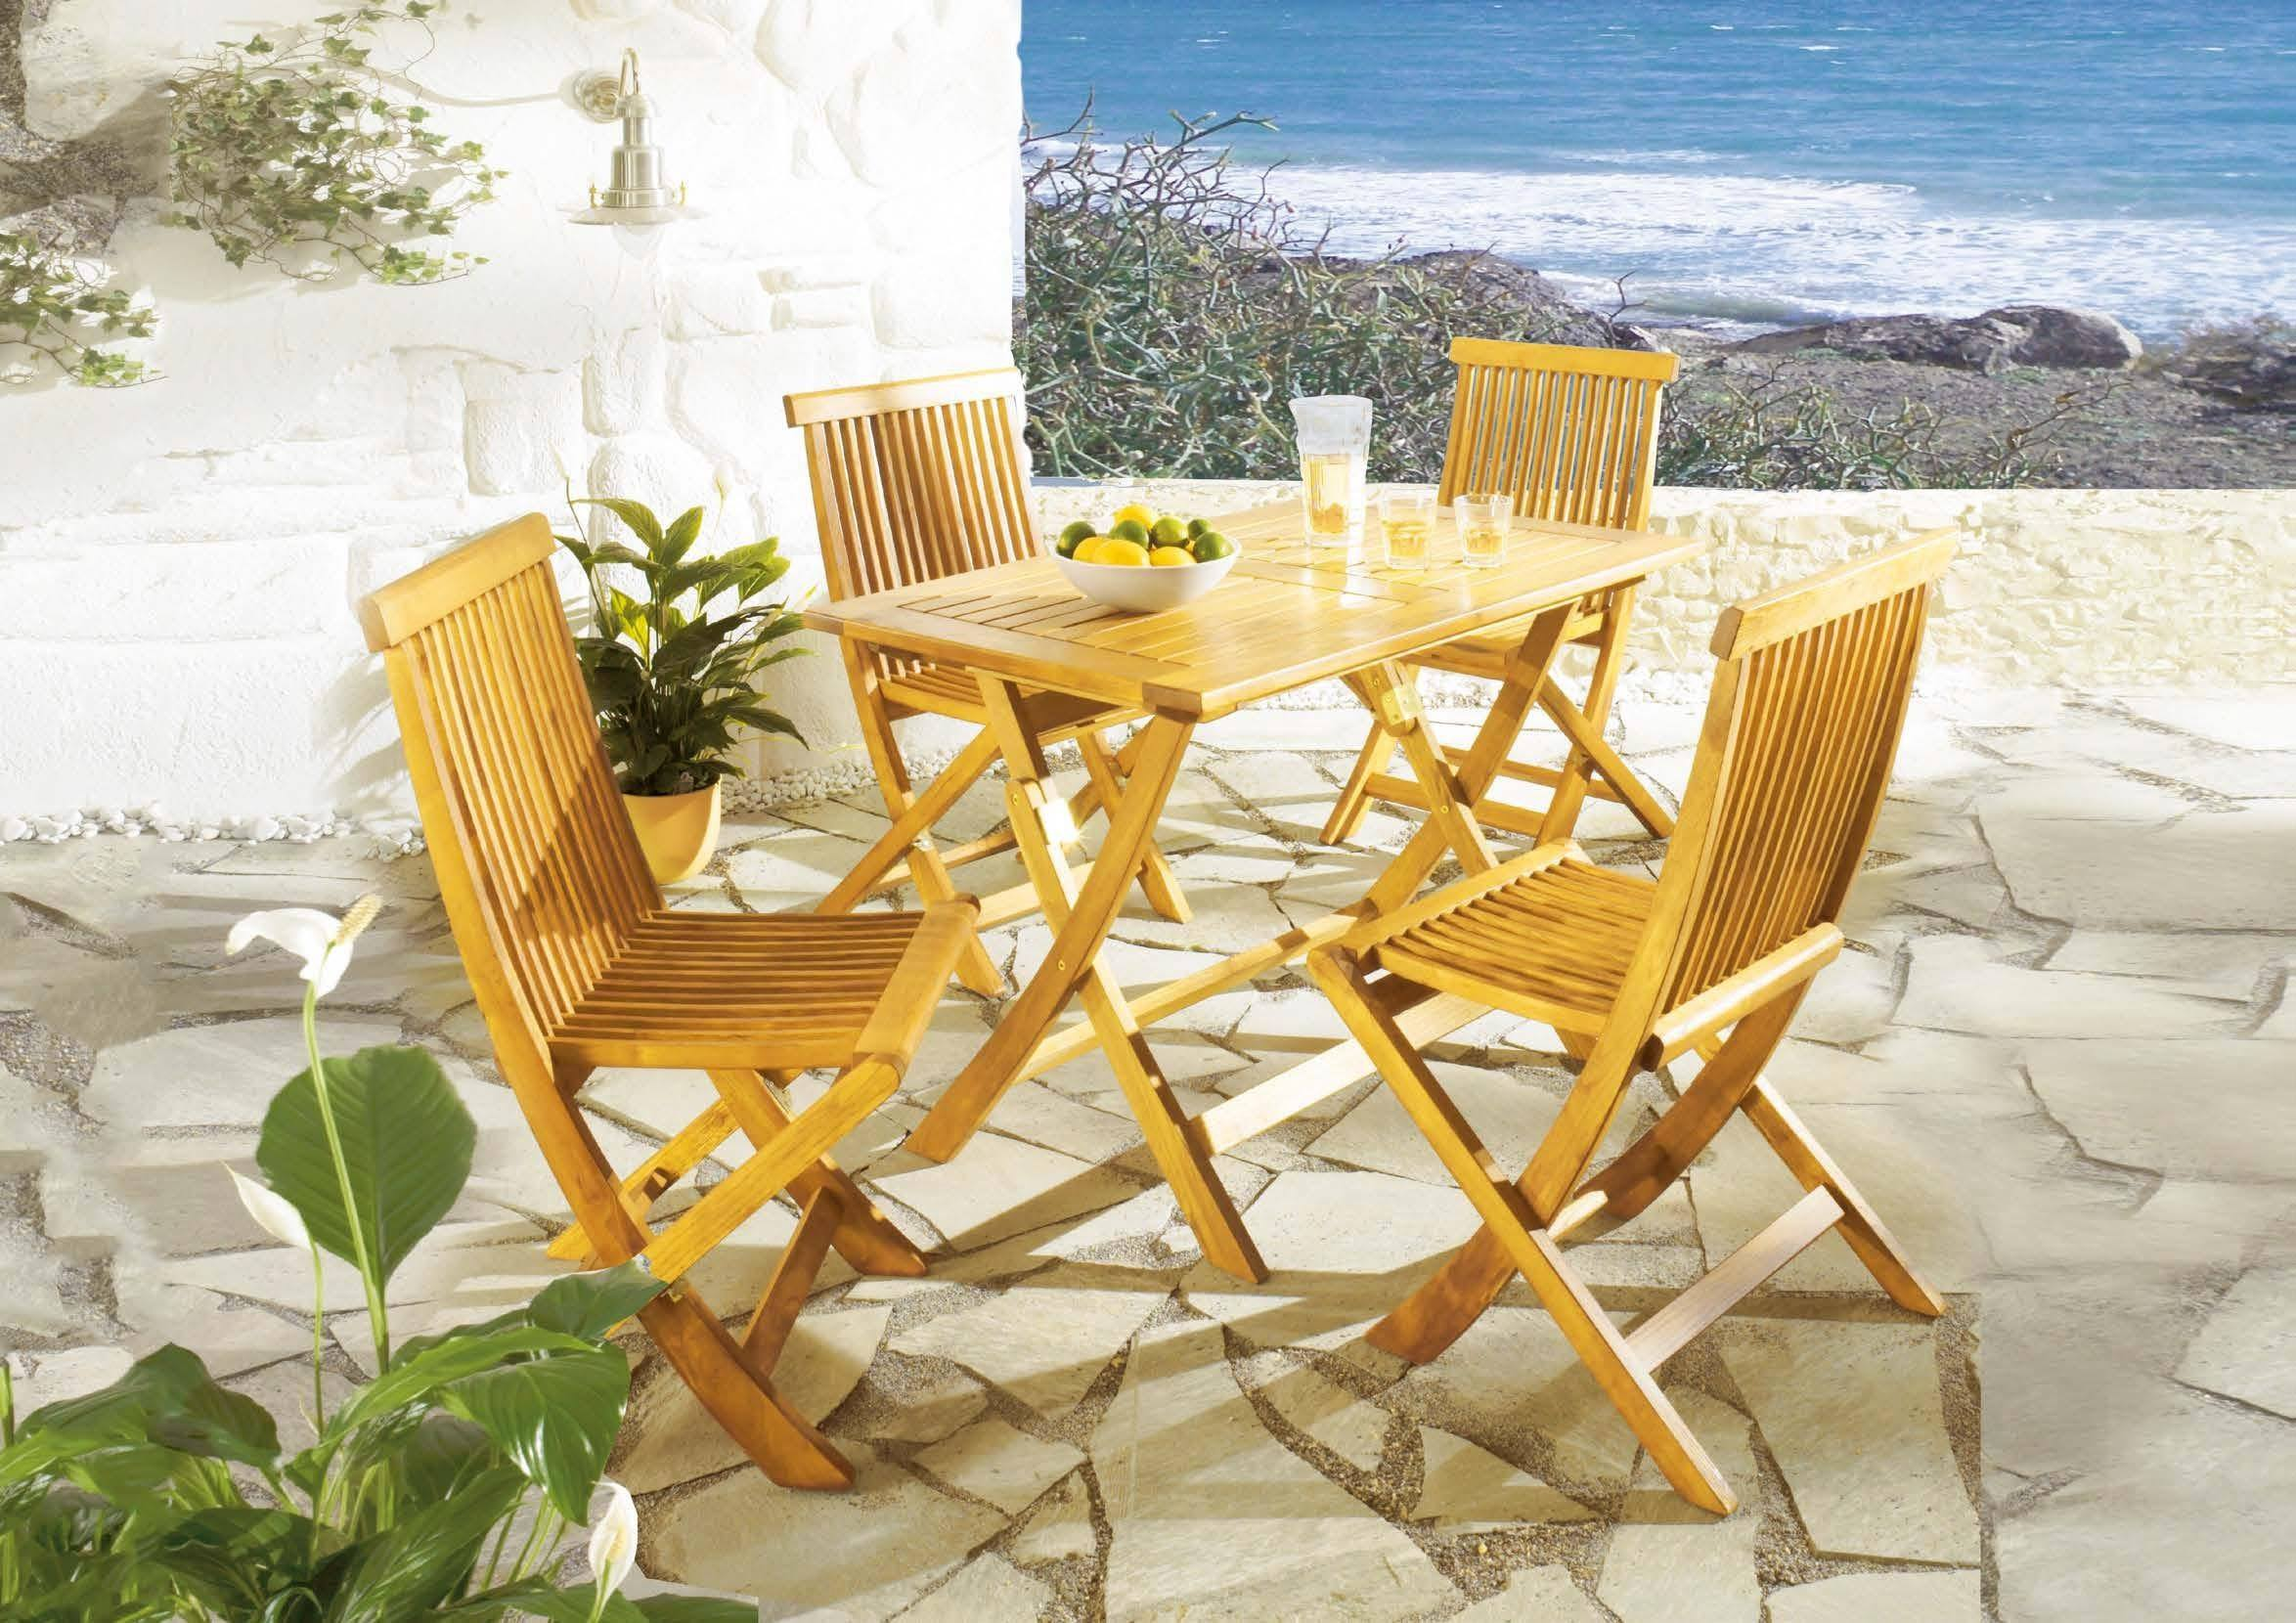 <p>Outdoor Furniture – Wooden Dining Collection Portofino.</p> <p> </p> <p>Portofino Furniture – Tables and Chairs.</p> <p> </p> <p>Multi-purpose use within the hospitality industry as restaurant, hotel or café terrace furniture. Suited for small intimate al fresco hospitality areas</p>